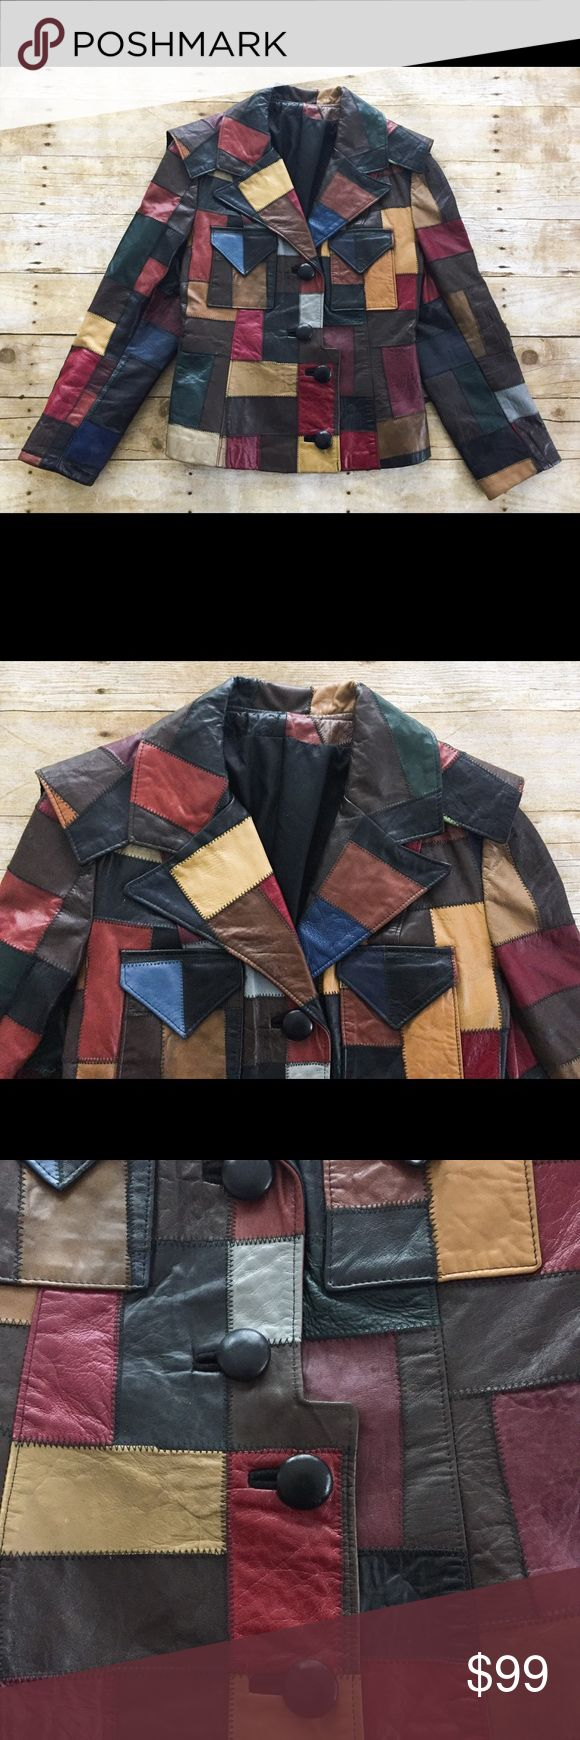 "Vintage Ivan Scott Patchwork Leather Jacket Awesome vintage Ivan Scott jacket.  100% leather patchwork.  Button front.  Fully line.  Size 14 or large.    Underarm to underarm 20"" Sleeve 23"" Length 23"" Waist 17"" Ivan Scott Jackets & Coats"